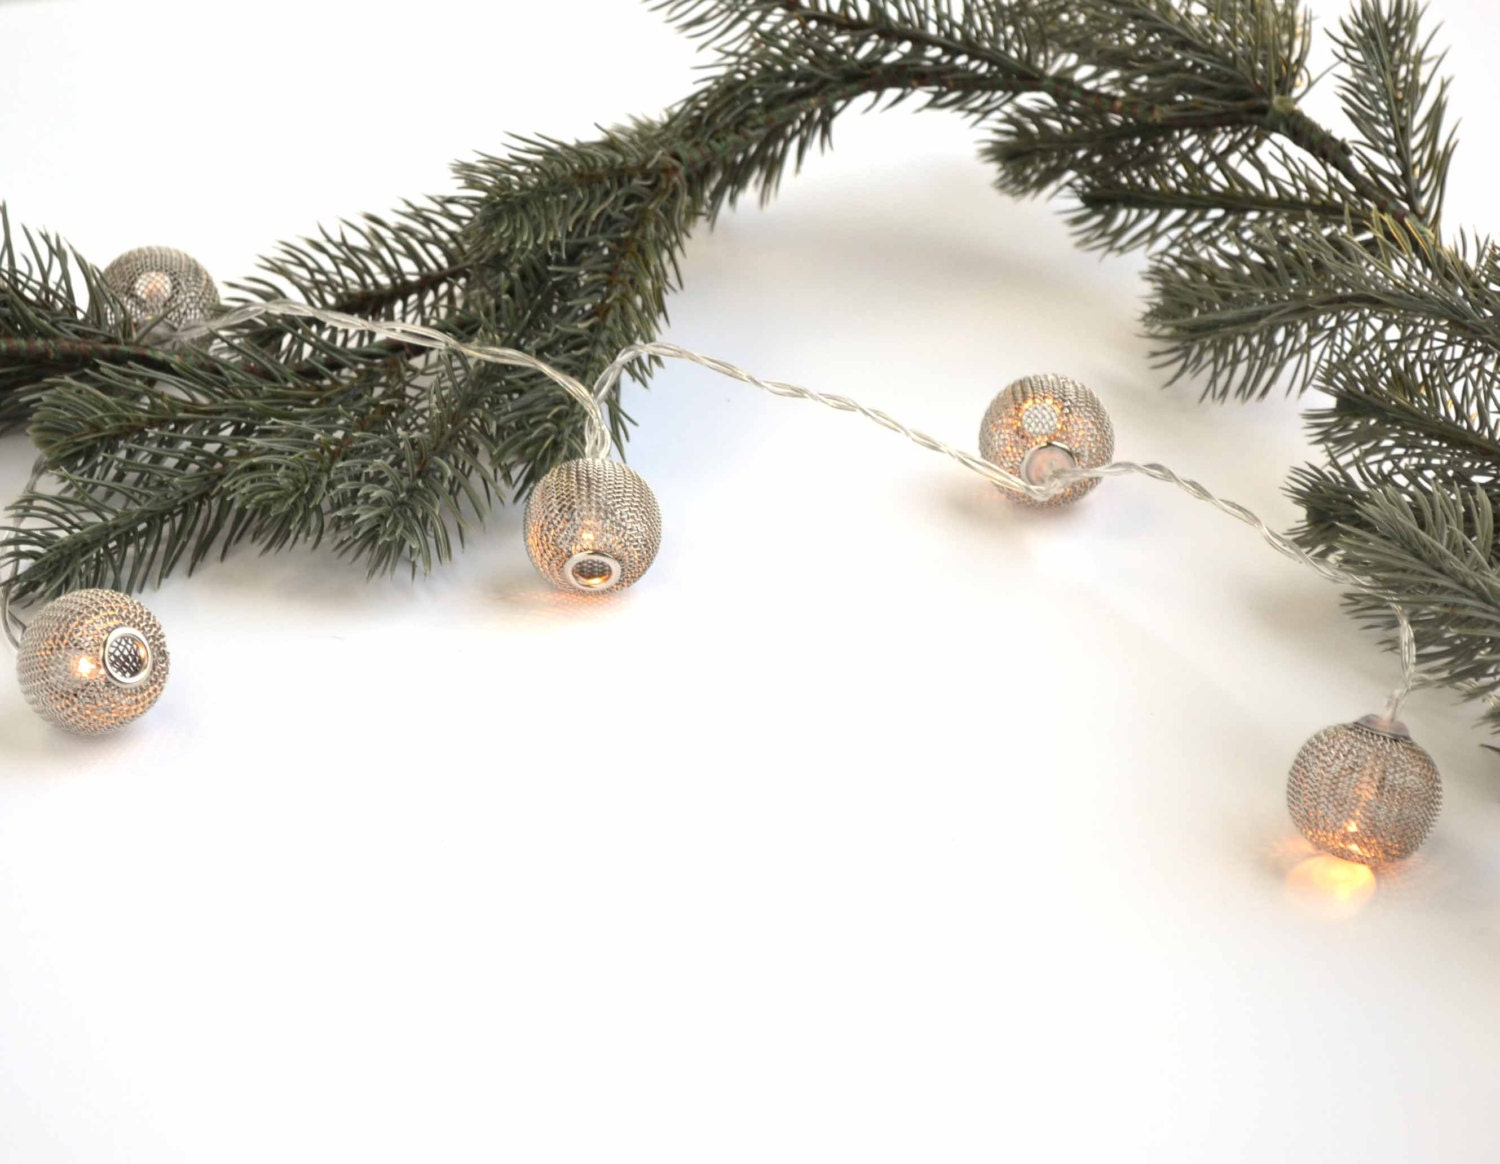 String Lights For Mantelpiece : Silver Christmas Lights - Round Silver Netted White Lights - Battery Operated Lights, Mantel ...